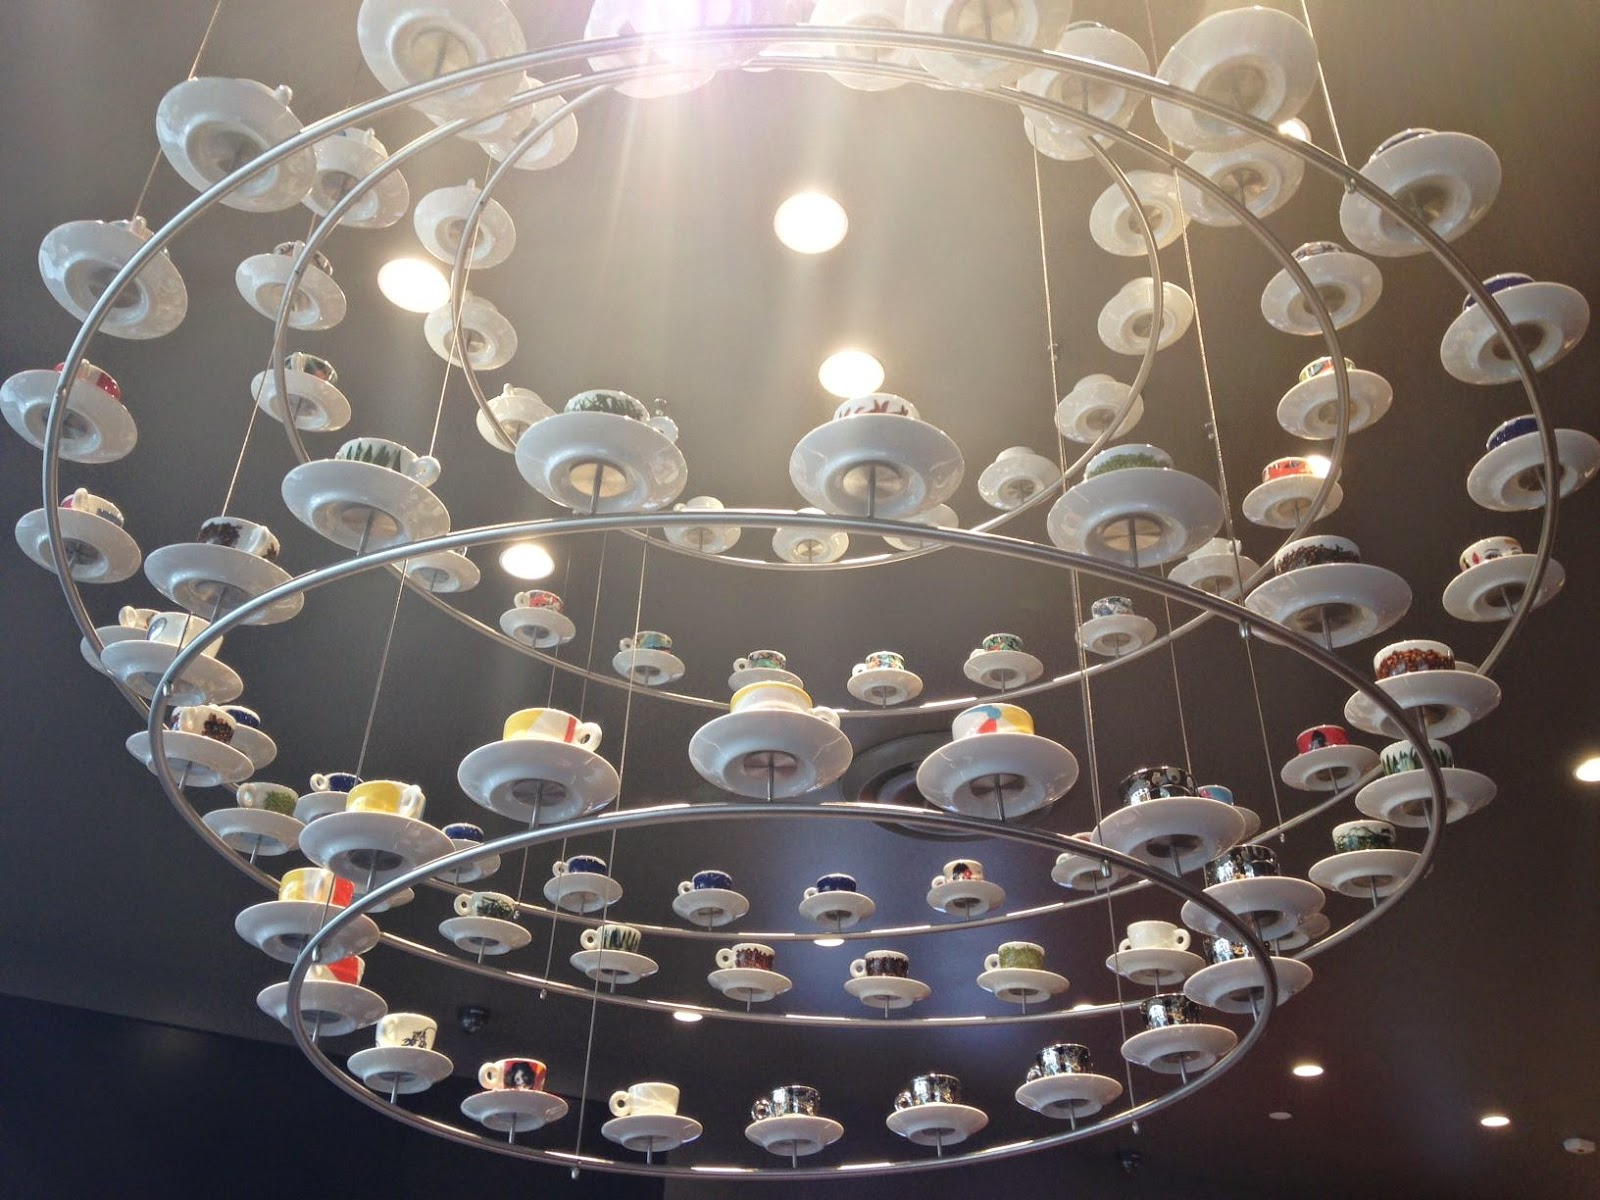 New illy cafe espressamente illy opens in metro theater in san the metro theater location boasts a whimsical chandelier made of 96 illy art collection cups designed by the greatest film directors of our time pedro arubaitofo Choice Image